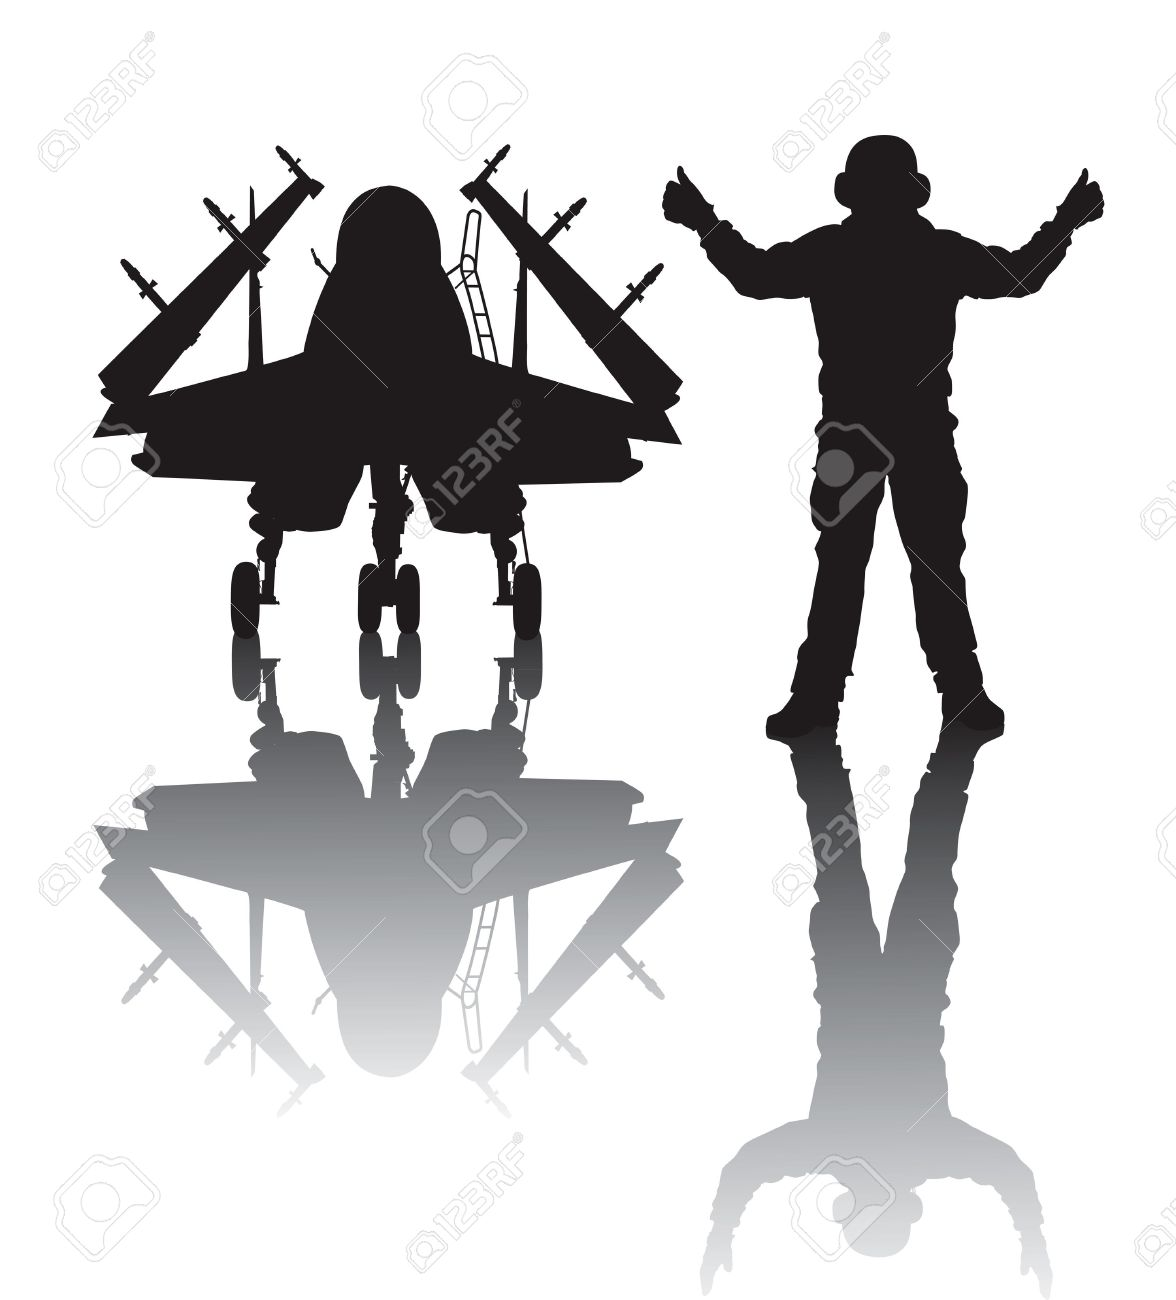 Naval Aircraft And Crewman Vector Silhouette With Reflection.